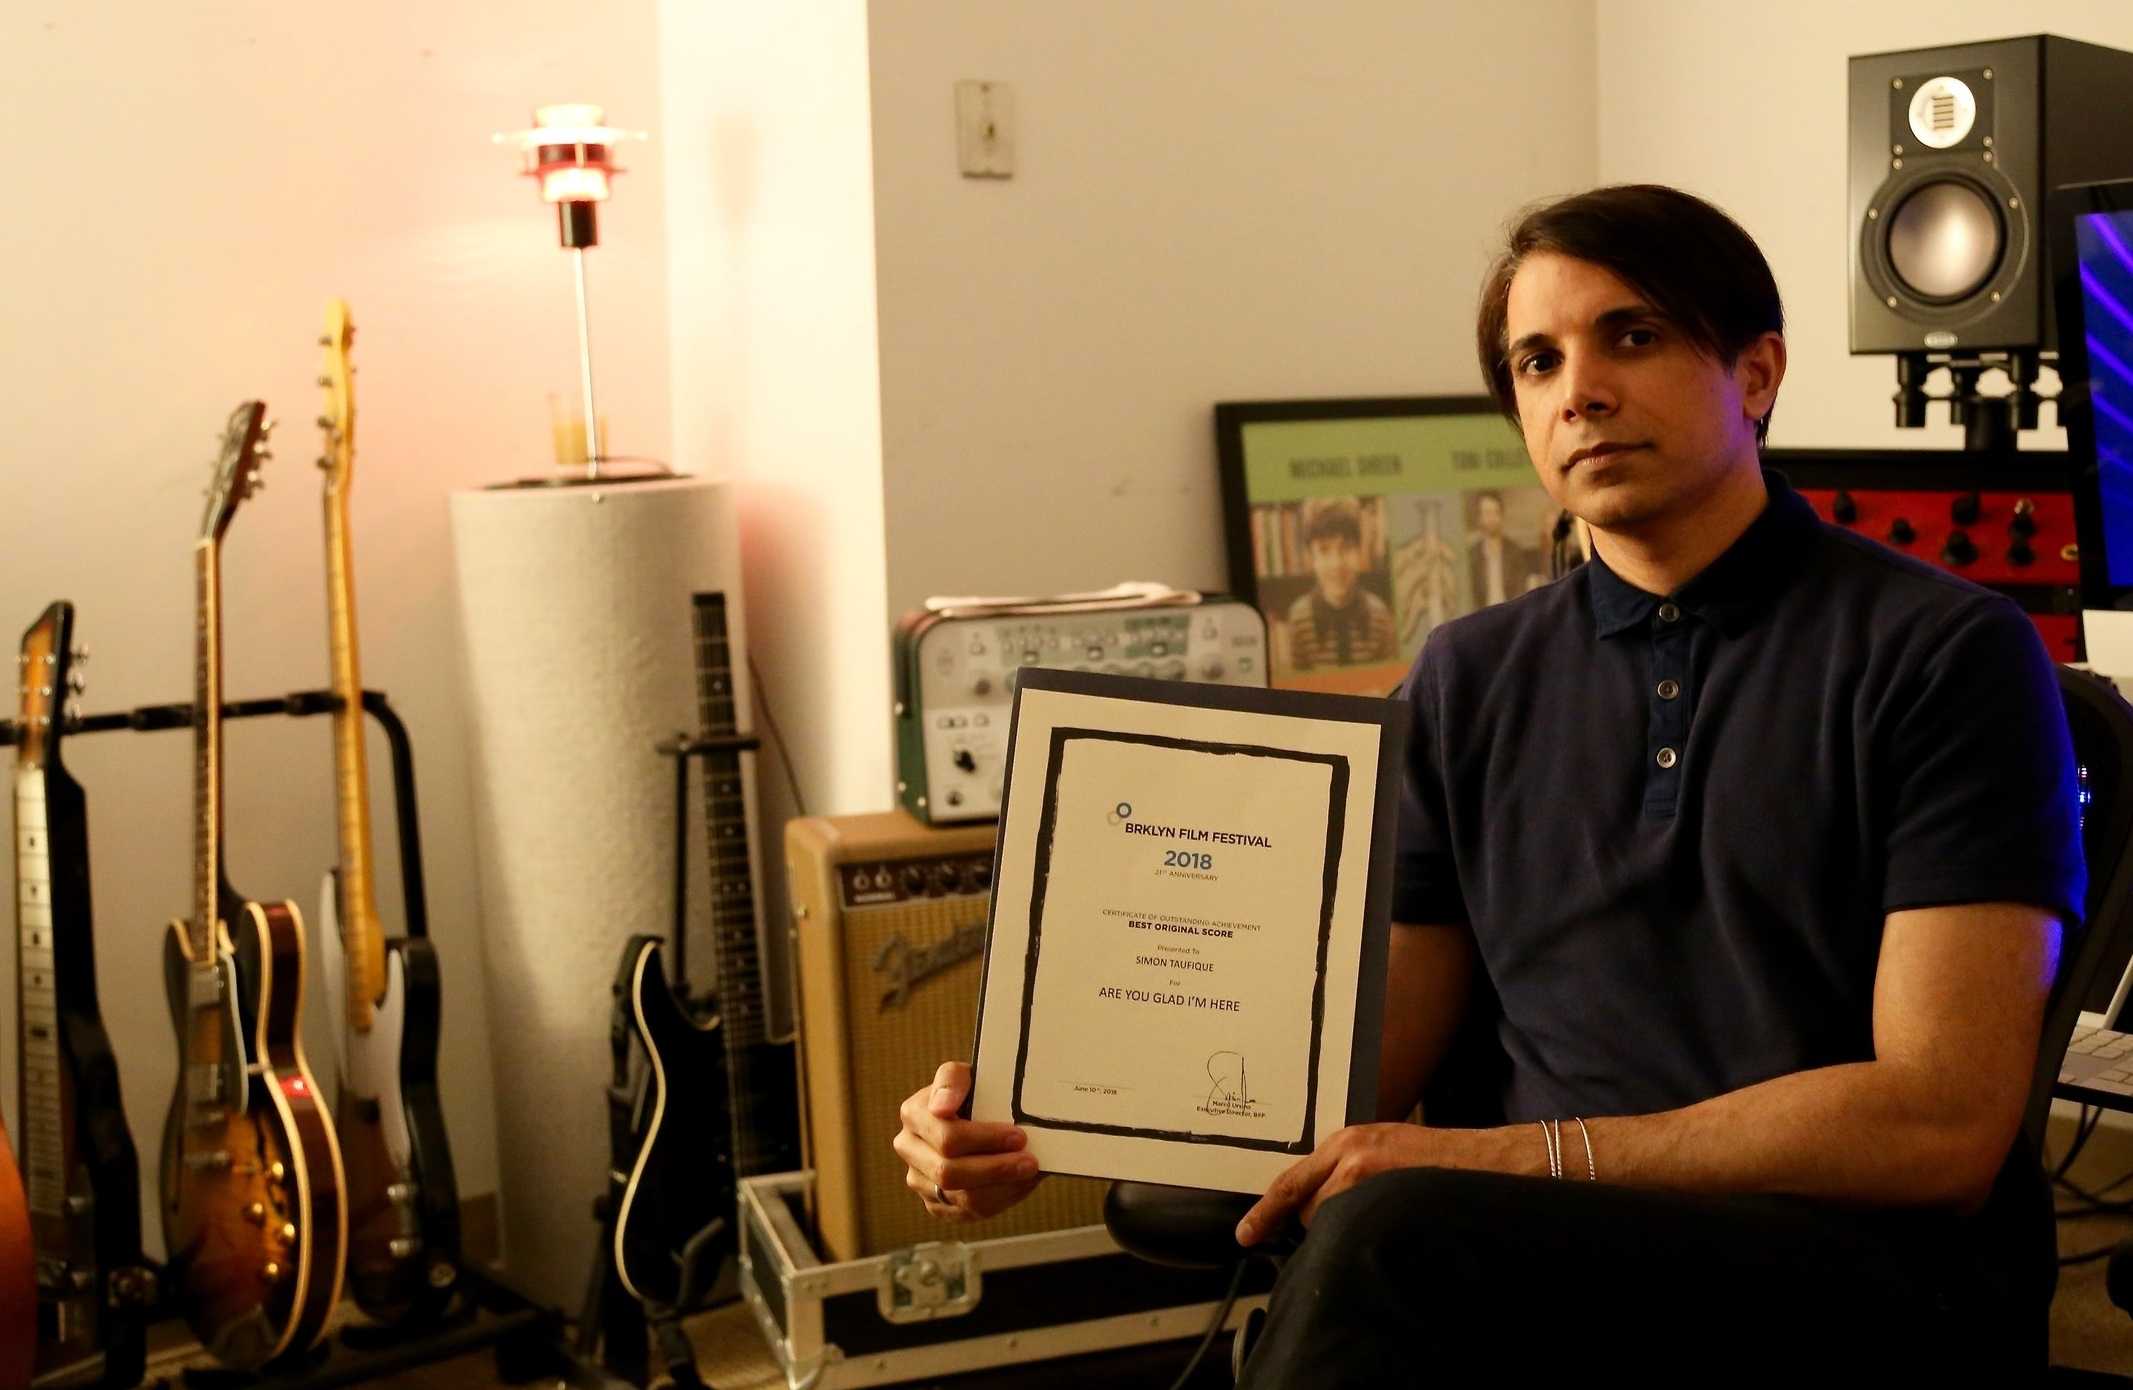 Are You Glad I'm Here wins Best Original Score and the Audience Award at the Brooklyn Film Festival - Composer Simon Taufique in his studio